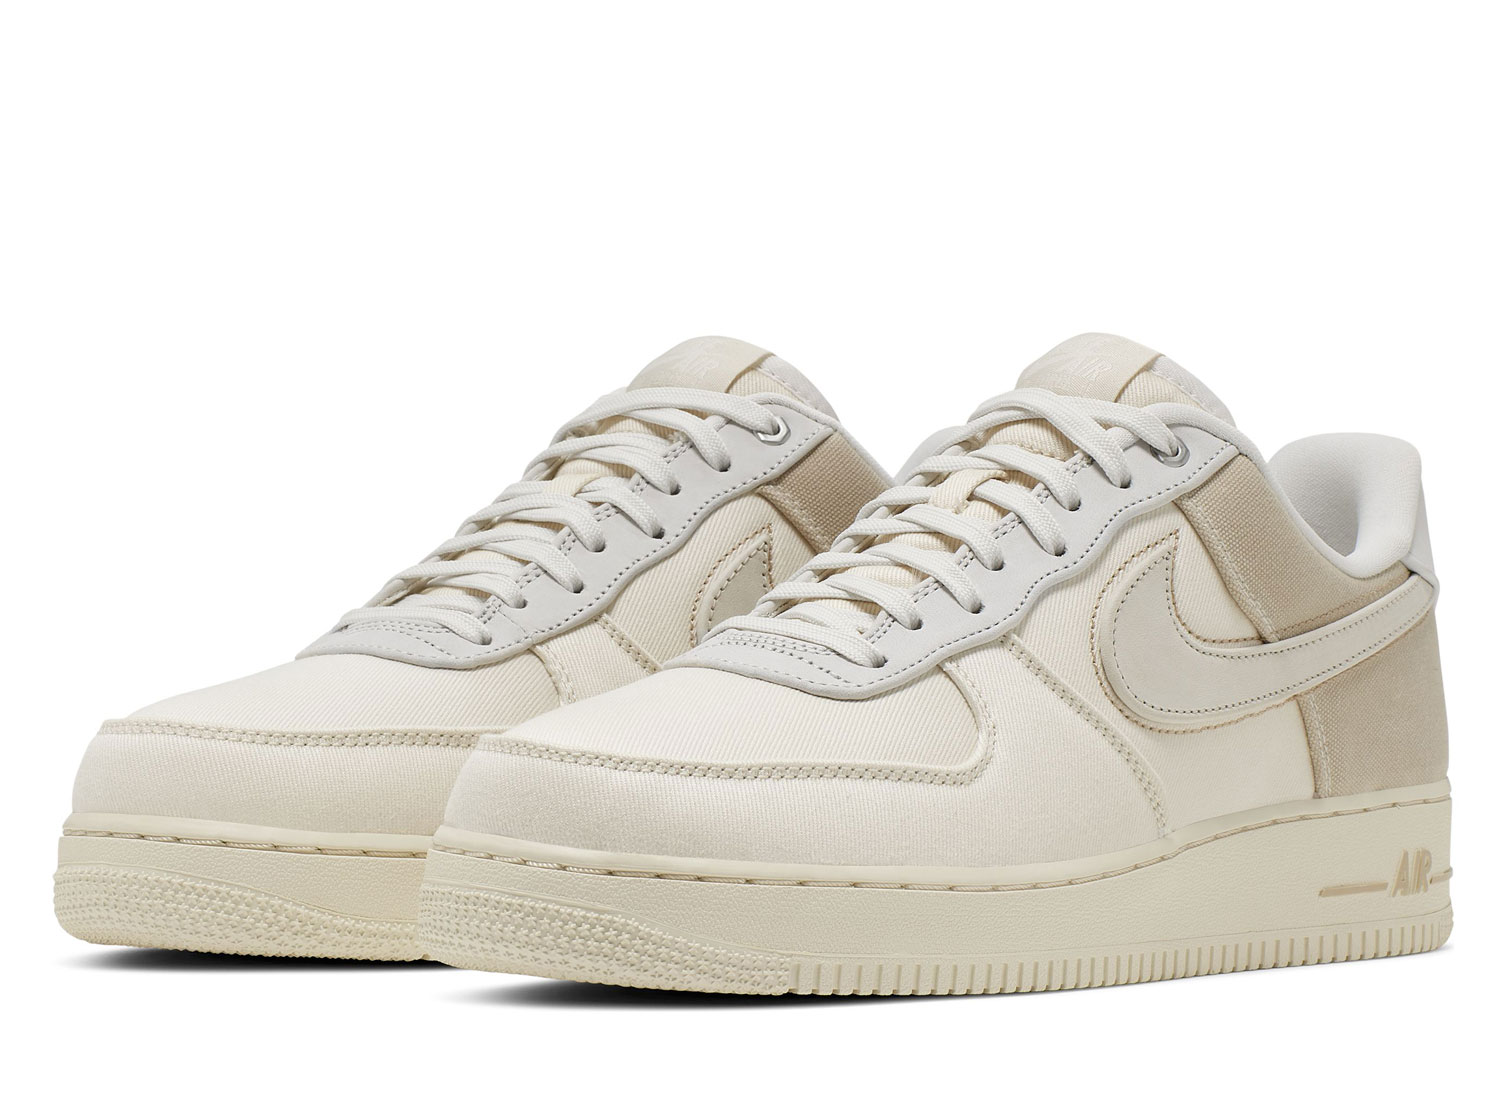 Nike Air Force 1 PRM Pale Ivory : Release date, Price & Info